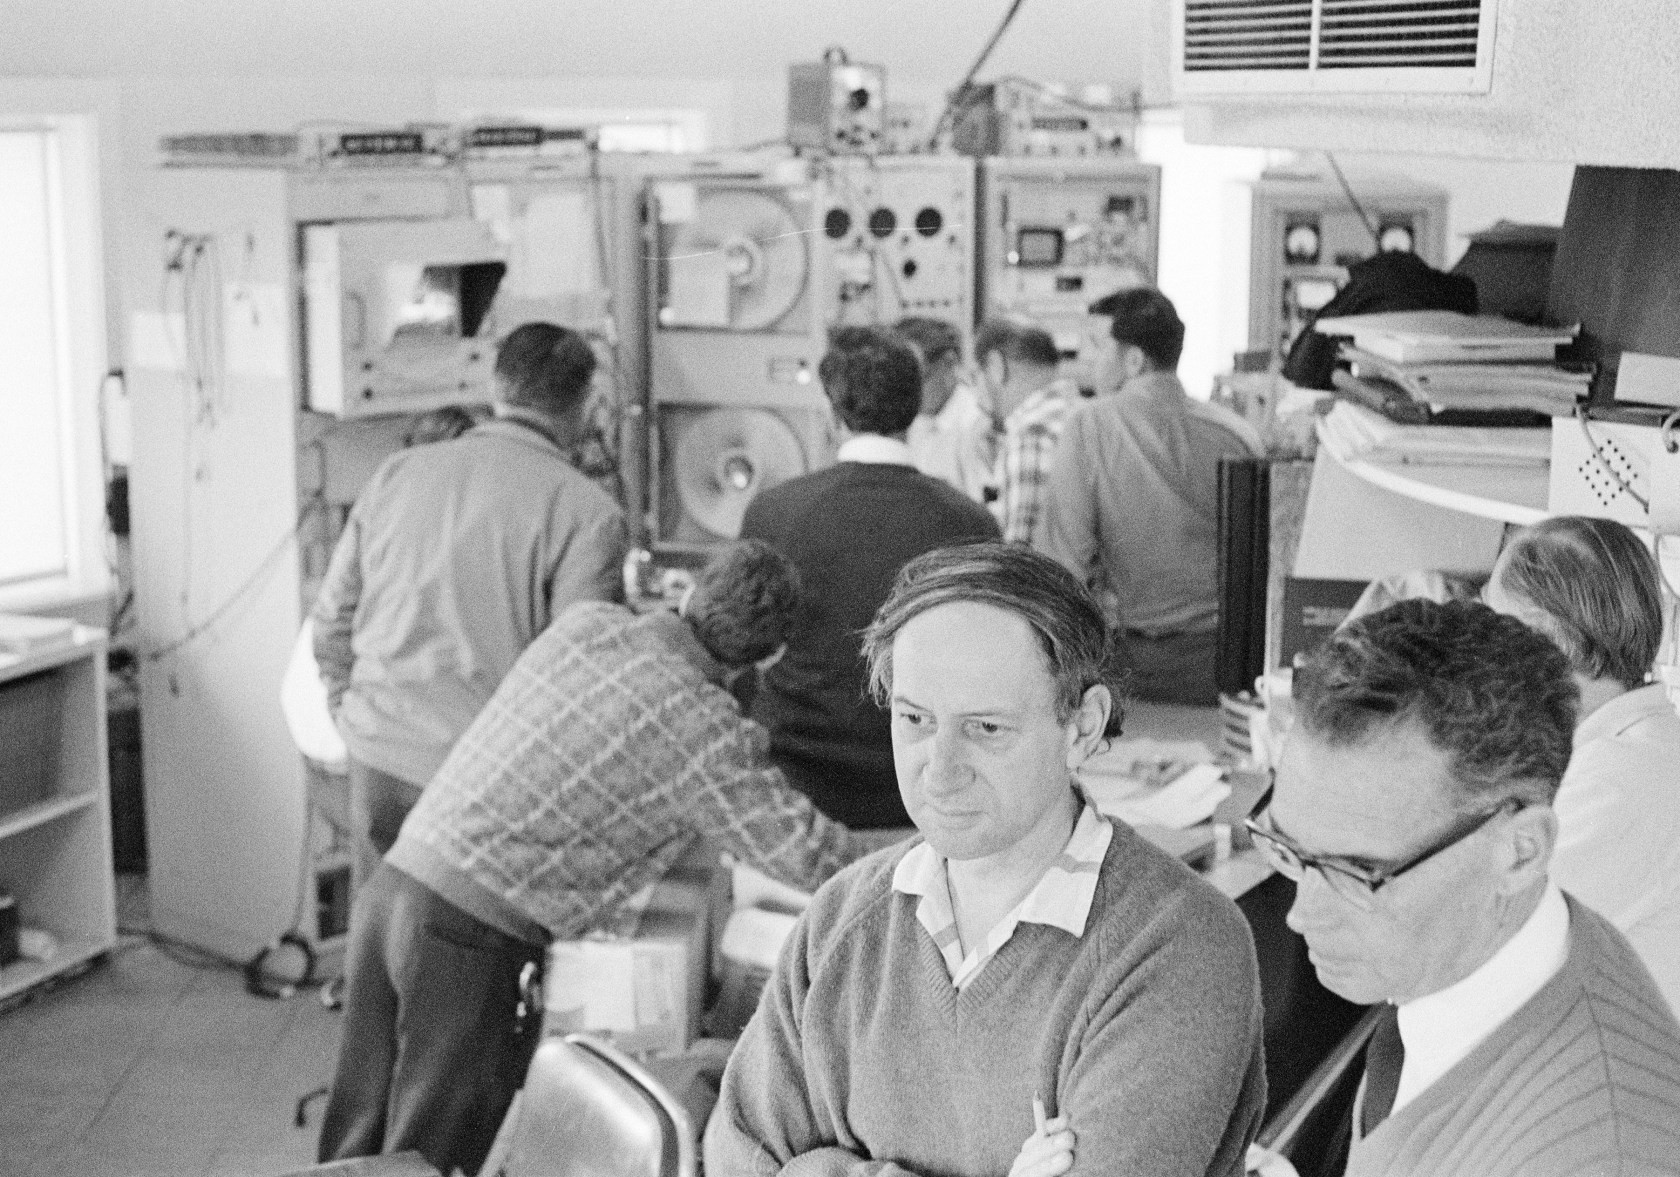 CSIRO staff watch the moon landing from within the Parkes radio telescope, on 21 July 1969.